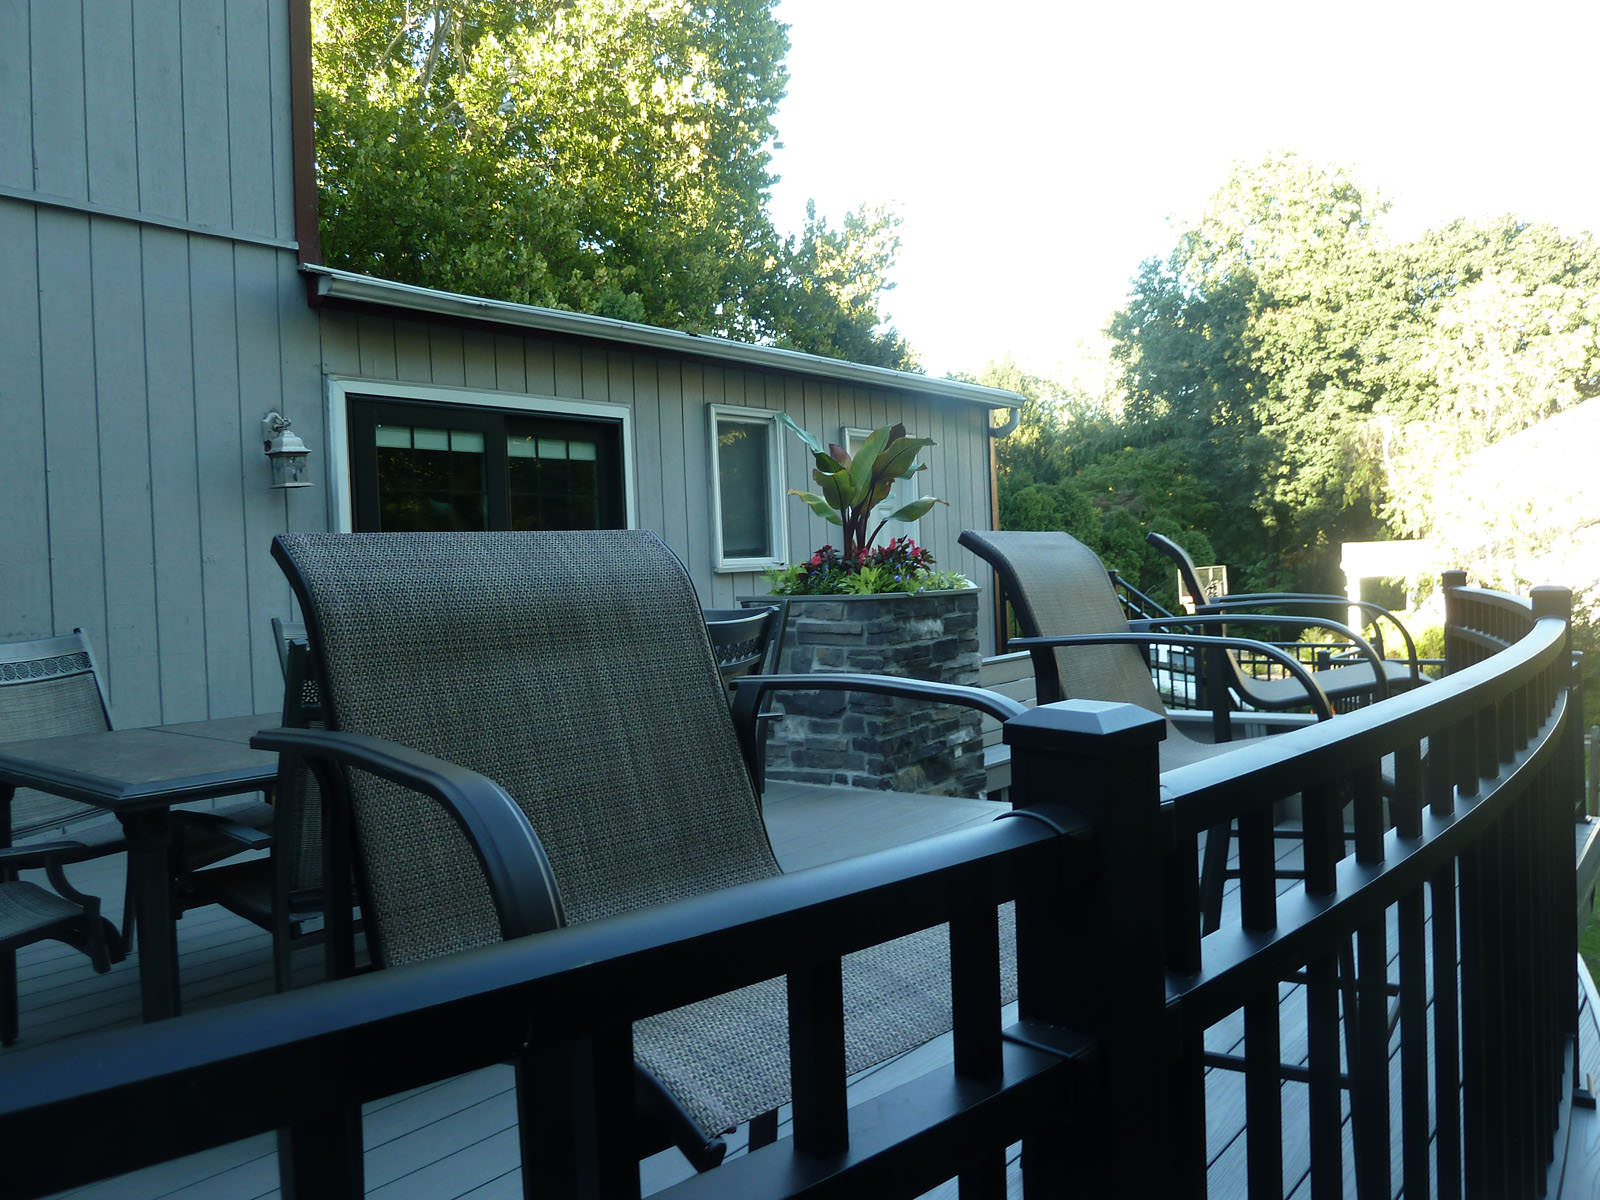 We designed and installed a custom curve to this deck to give the space much appreciated visual interest.